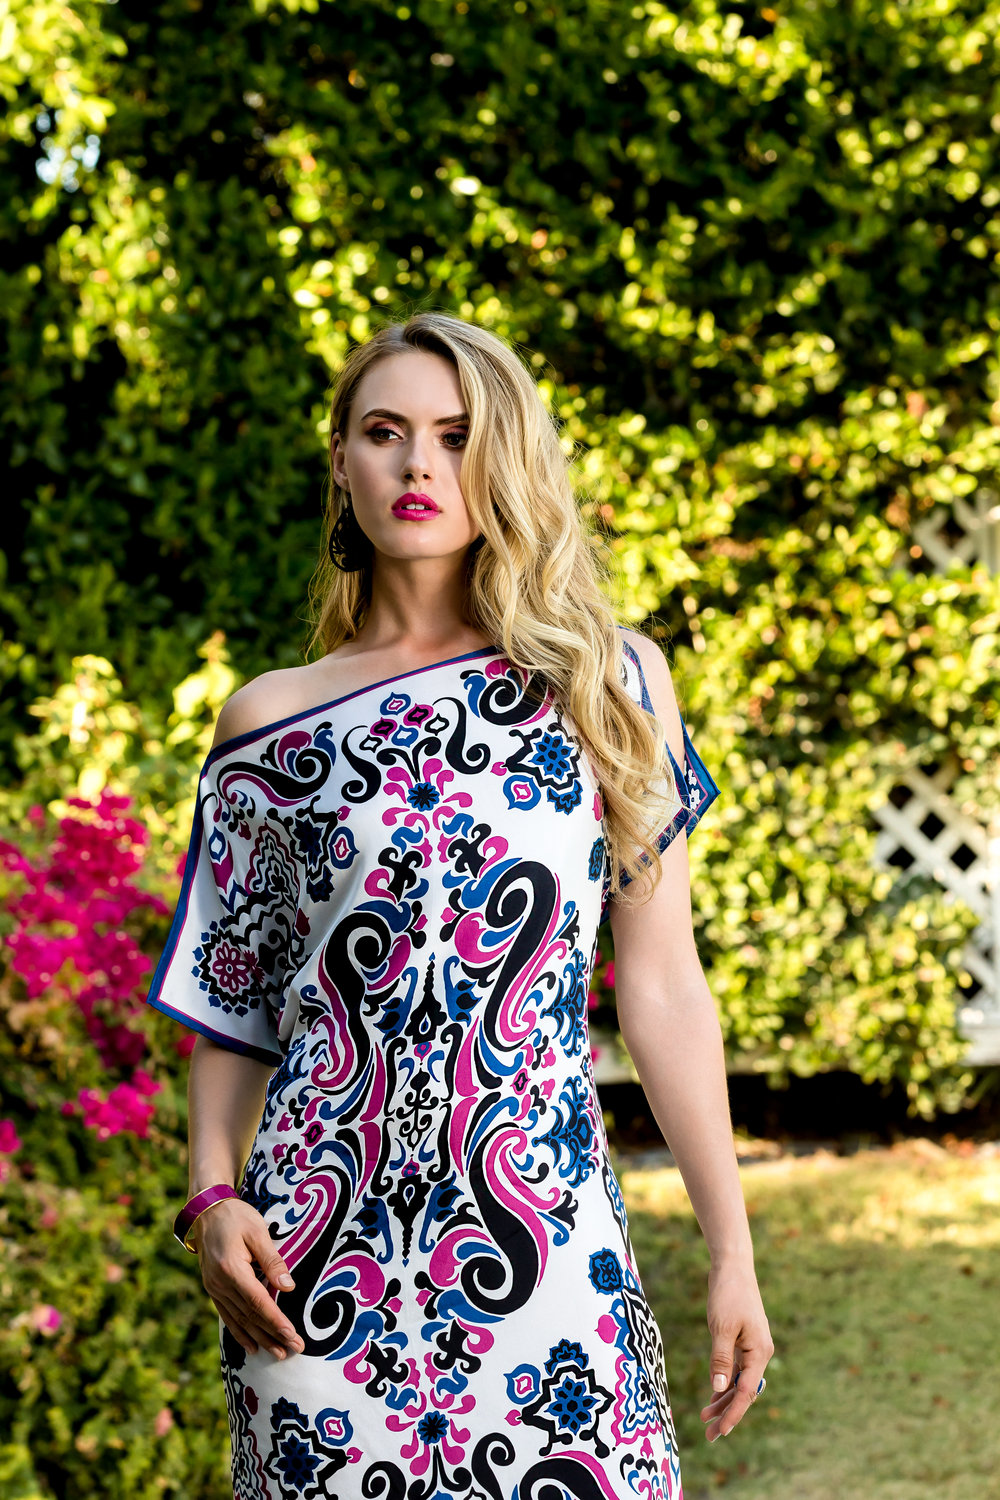 SHOP THE LOOK :  AMANDA REVERSIBLE SILK SCARF TUNIC IN LTD ED RETRO GRAPHIC / MOROCCAN GARDEN PRINTS